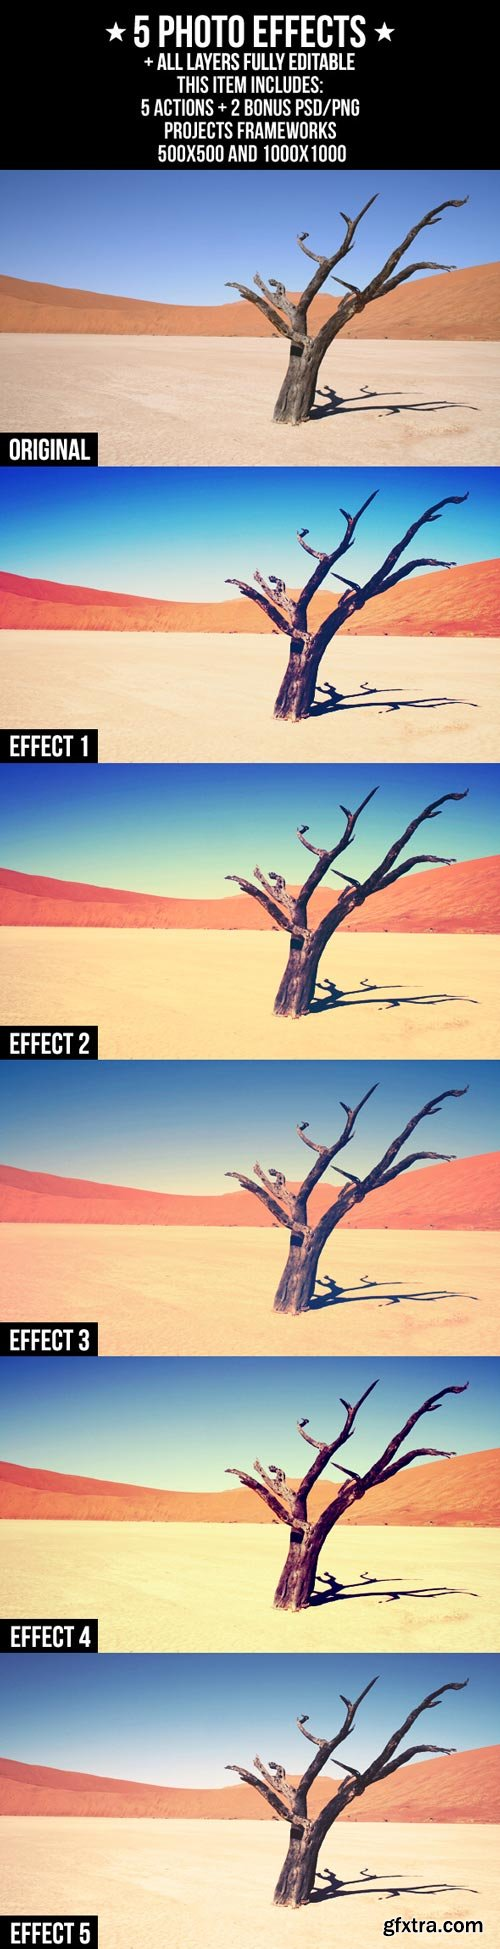 GraphicRiver - 5 Photo Effects 2196161